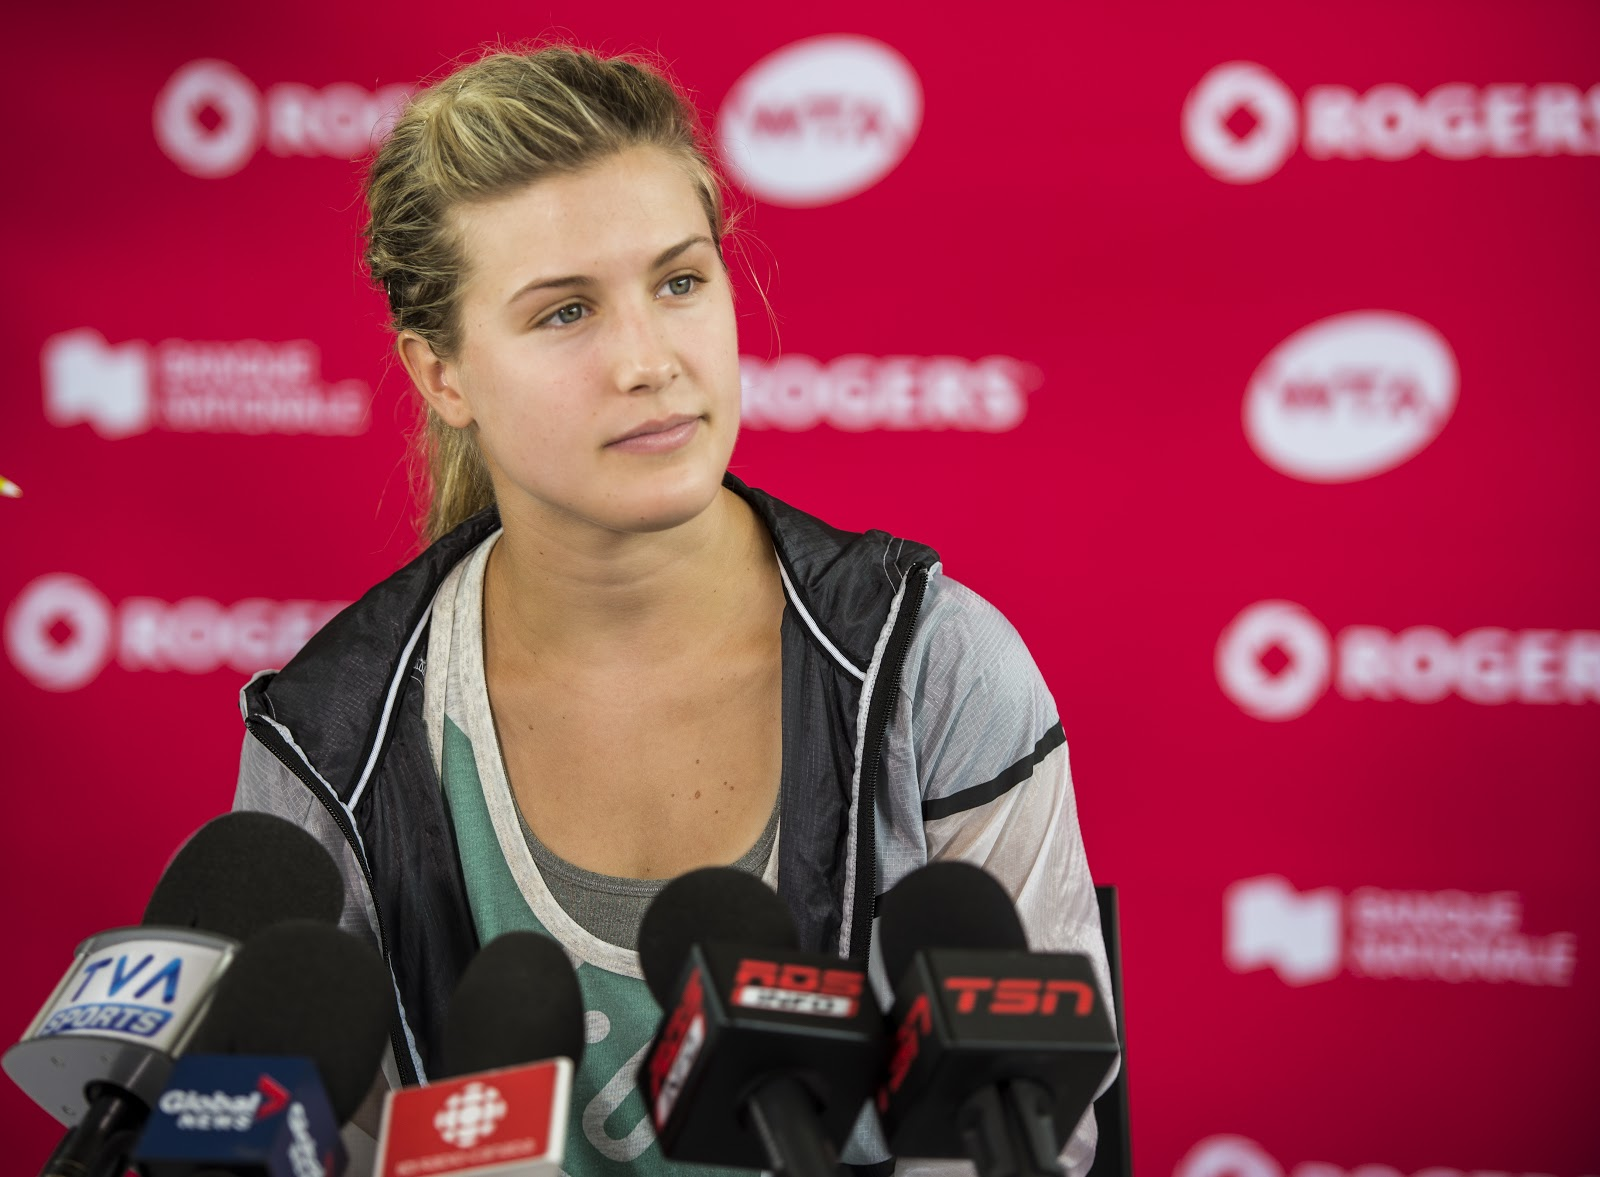 Canadian Tennis Star Eugenie Bouchard HD Wallpapers | HD Pictures of Eugenie Bouchard